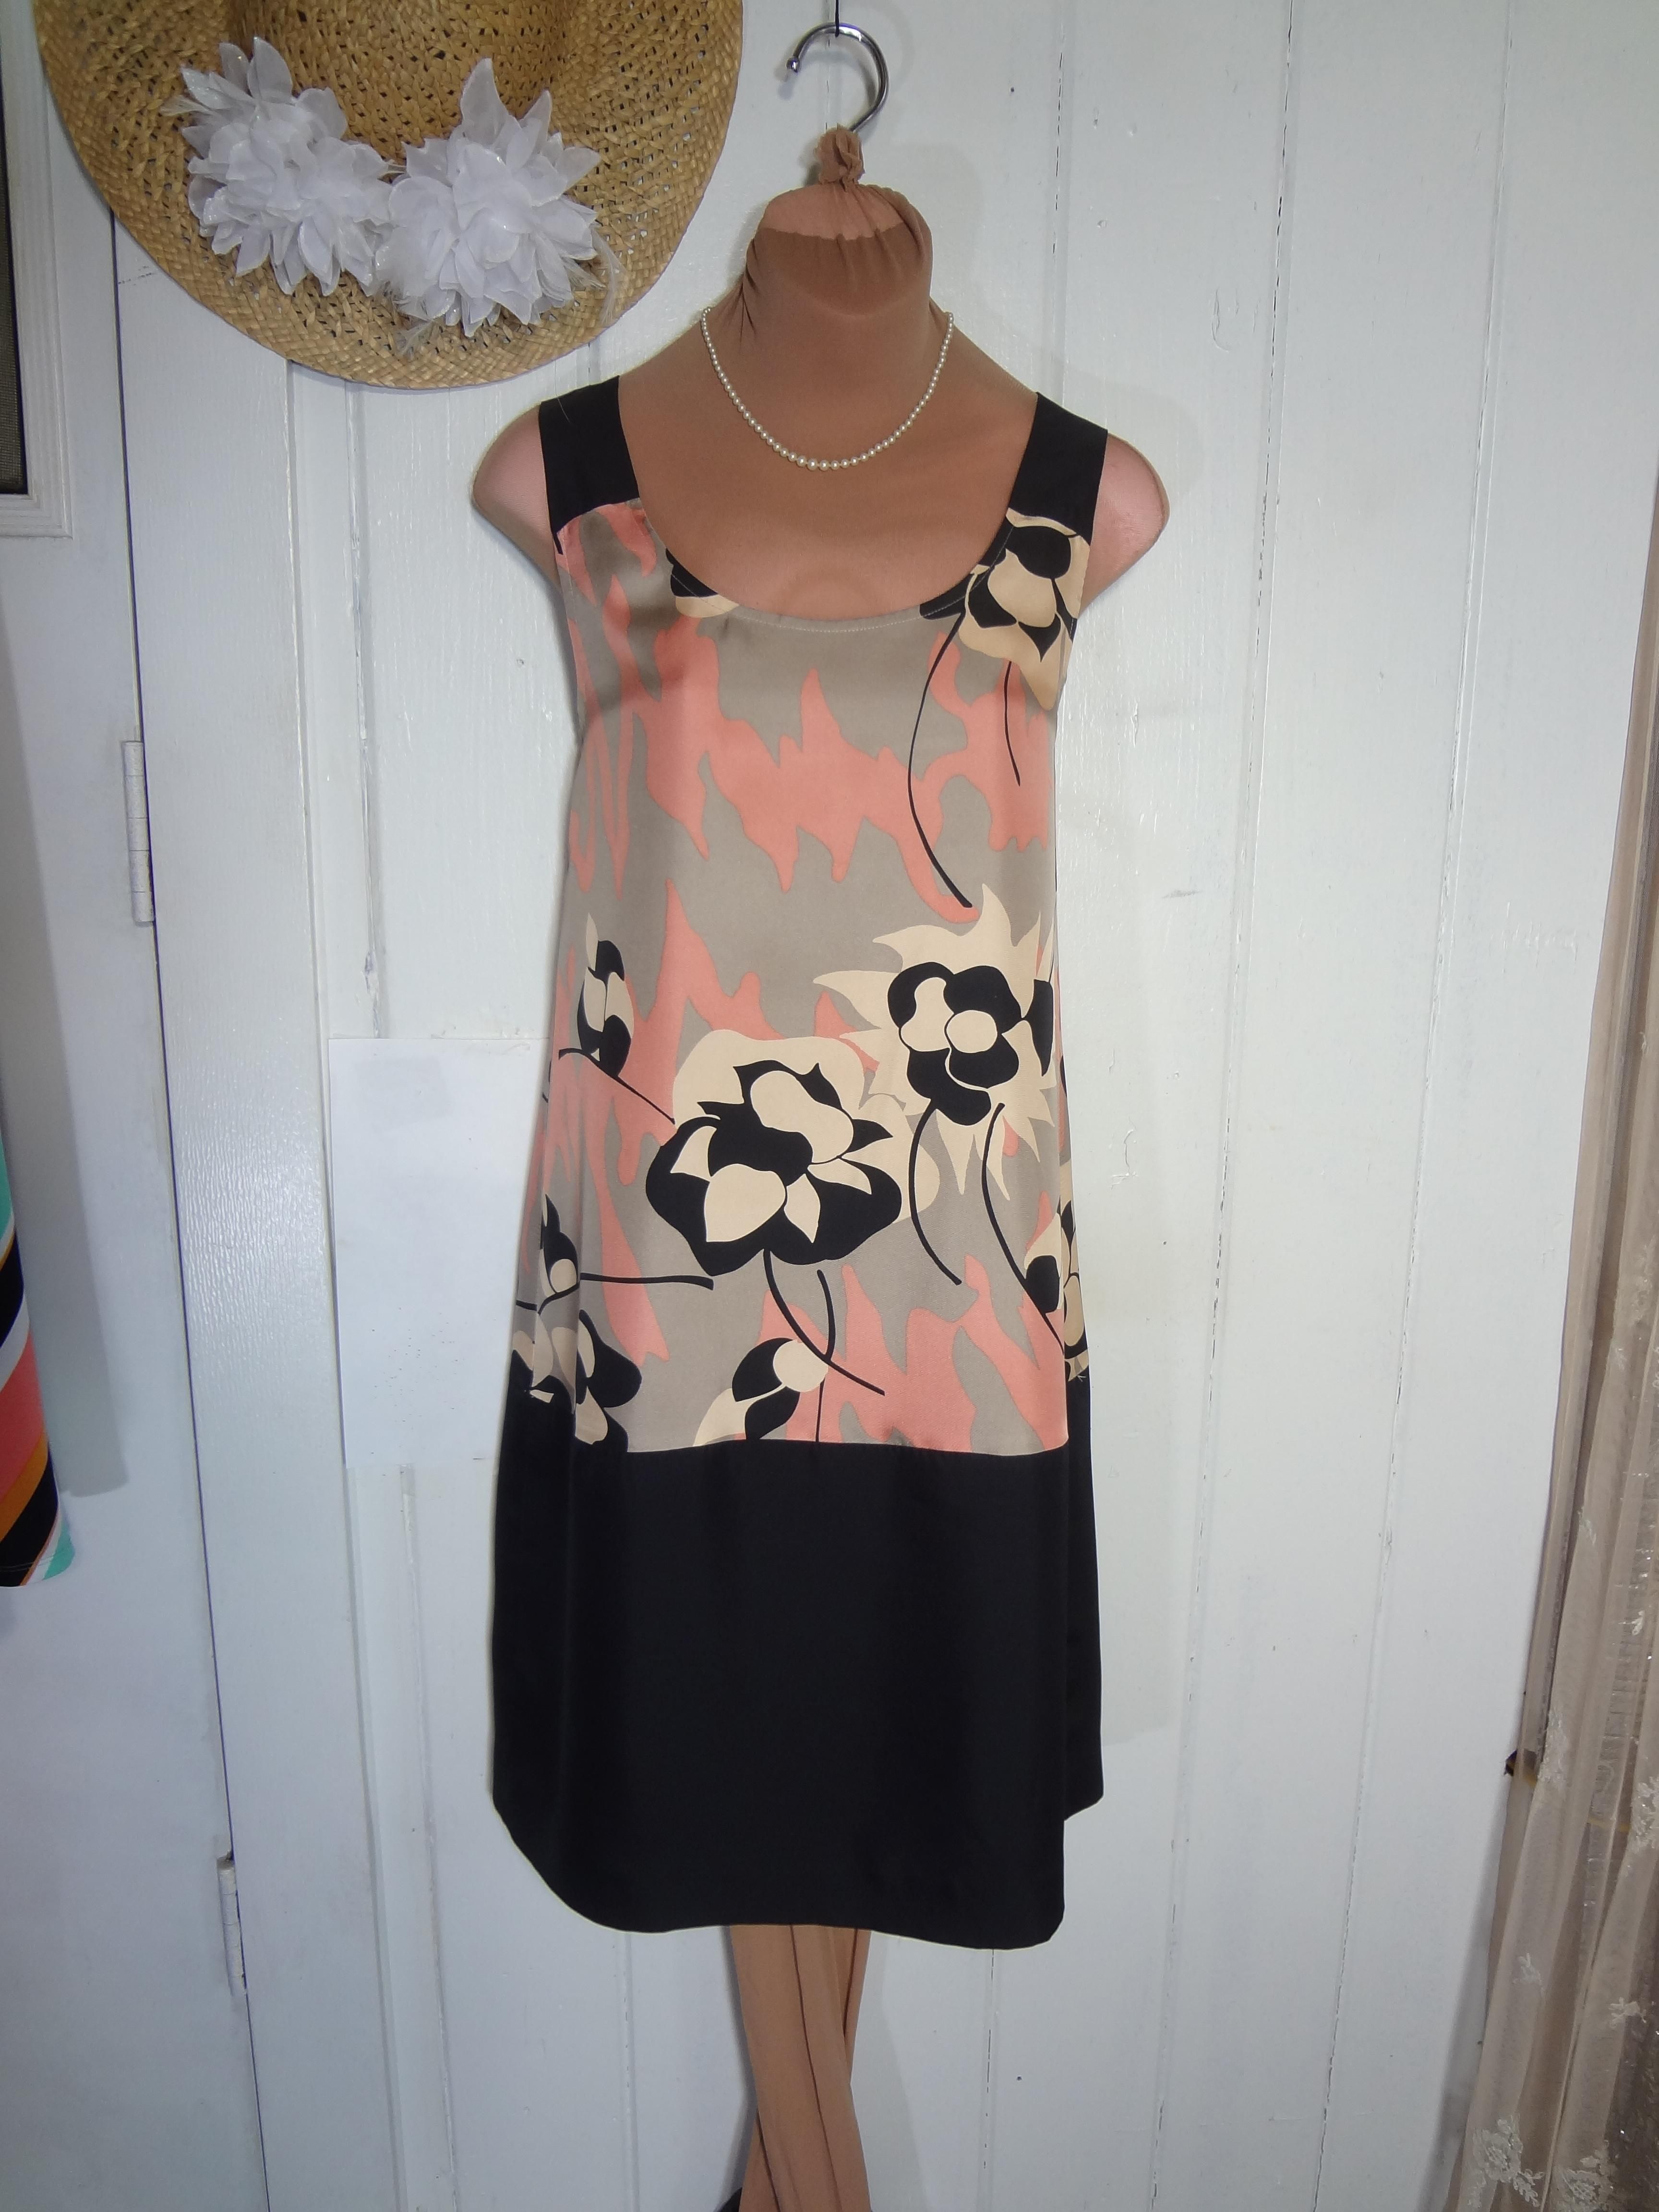 968d8b35356 DKNY Simple Elegance In Dress. Free shipping and guaranteed authenticity on  DKNY Simple Elegance In Dress at Tradesy. The last 2 photos show a similar  DKNY ...